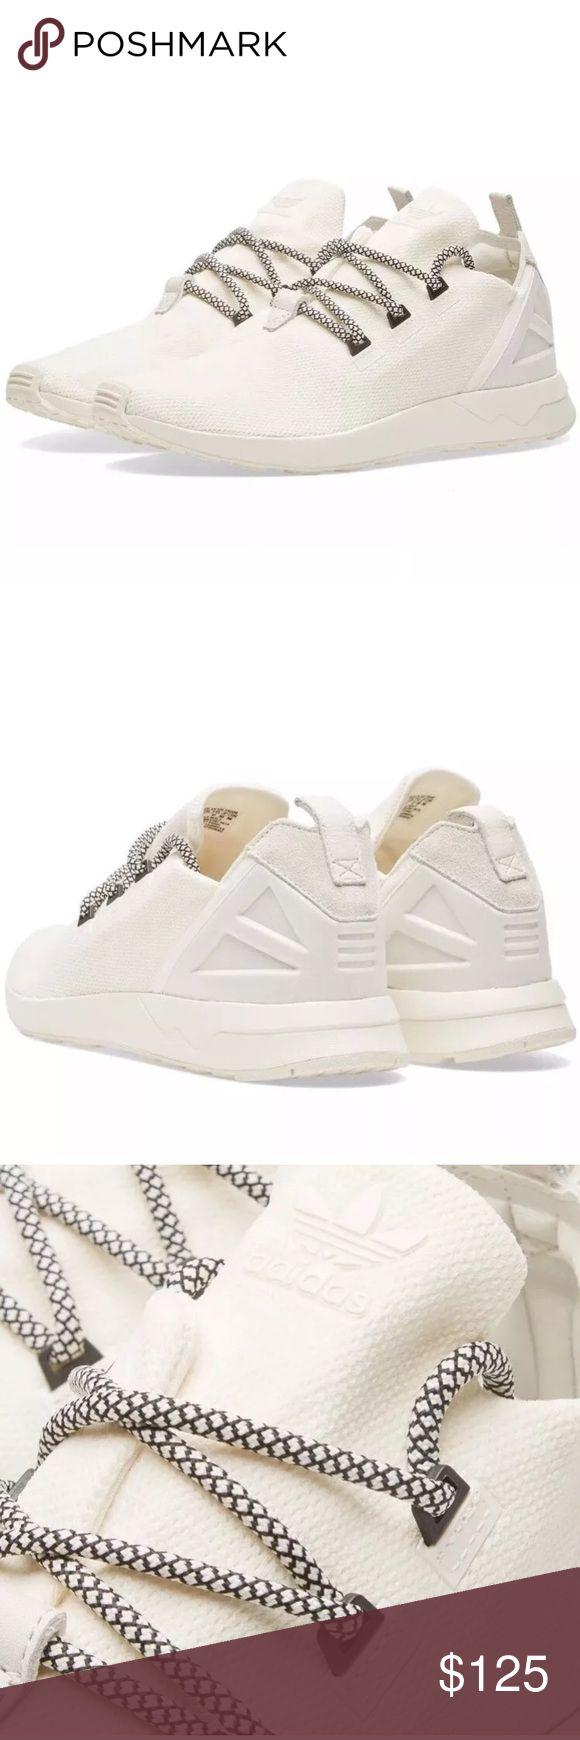 Adidas Original Men's ZX Flux ADV X Shoes Sz 11.5 Adidas Original Men's ZX Flux ADV X Shoes Size 11.5 B49403 Off-White   Brand : adidas   Style Code : B49403   Color : Off White   Size : US Men's 11.5   A modern and minimalist style is updated with the next stop in the ZX evolution.   Stretch Mesh Uppers   Advanced Tongue Construction   Elastane Lining   Injected EVA Midsole   Moulded Heel Cage   Rubber Outsole   BRAND NEW. NO BOX. NEVER WORN OR TRIED ON.   100% AUTHENTIC Adidas Shoes…